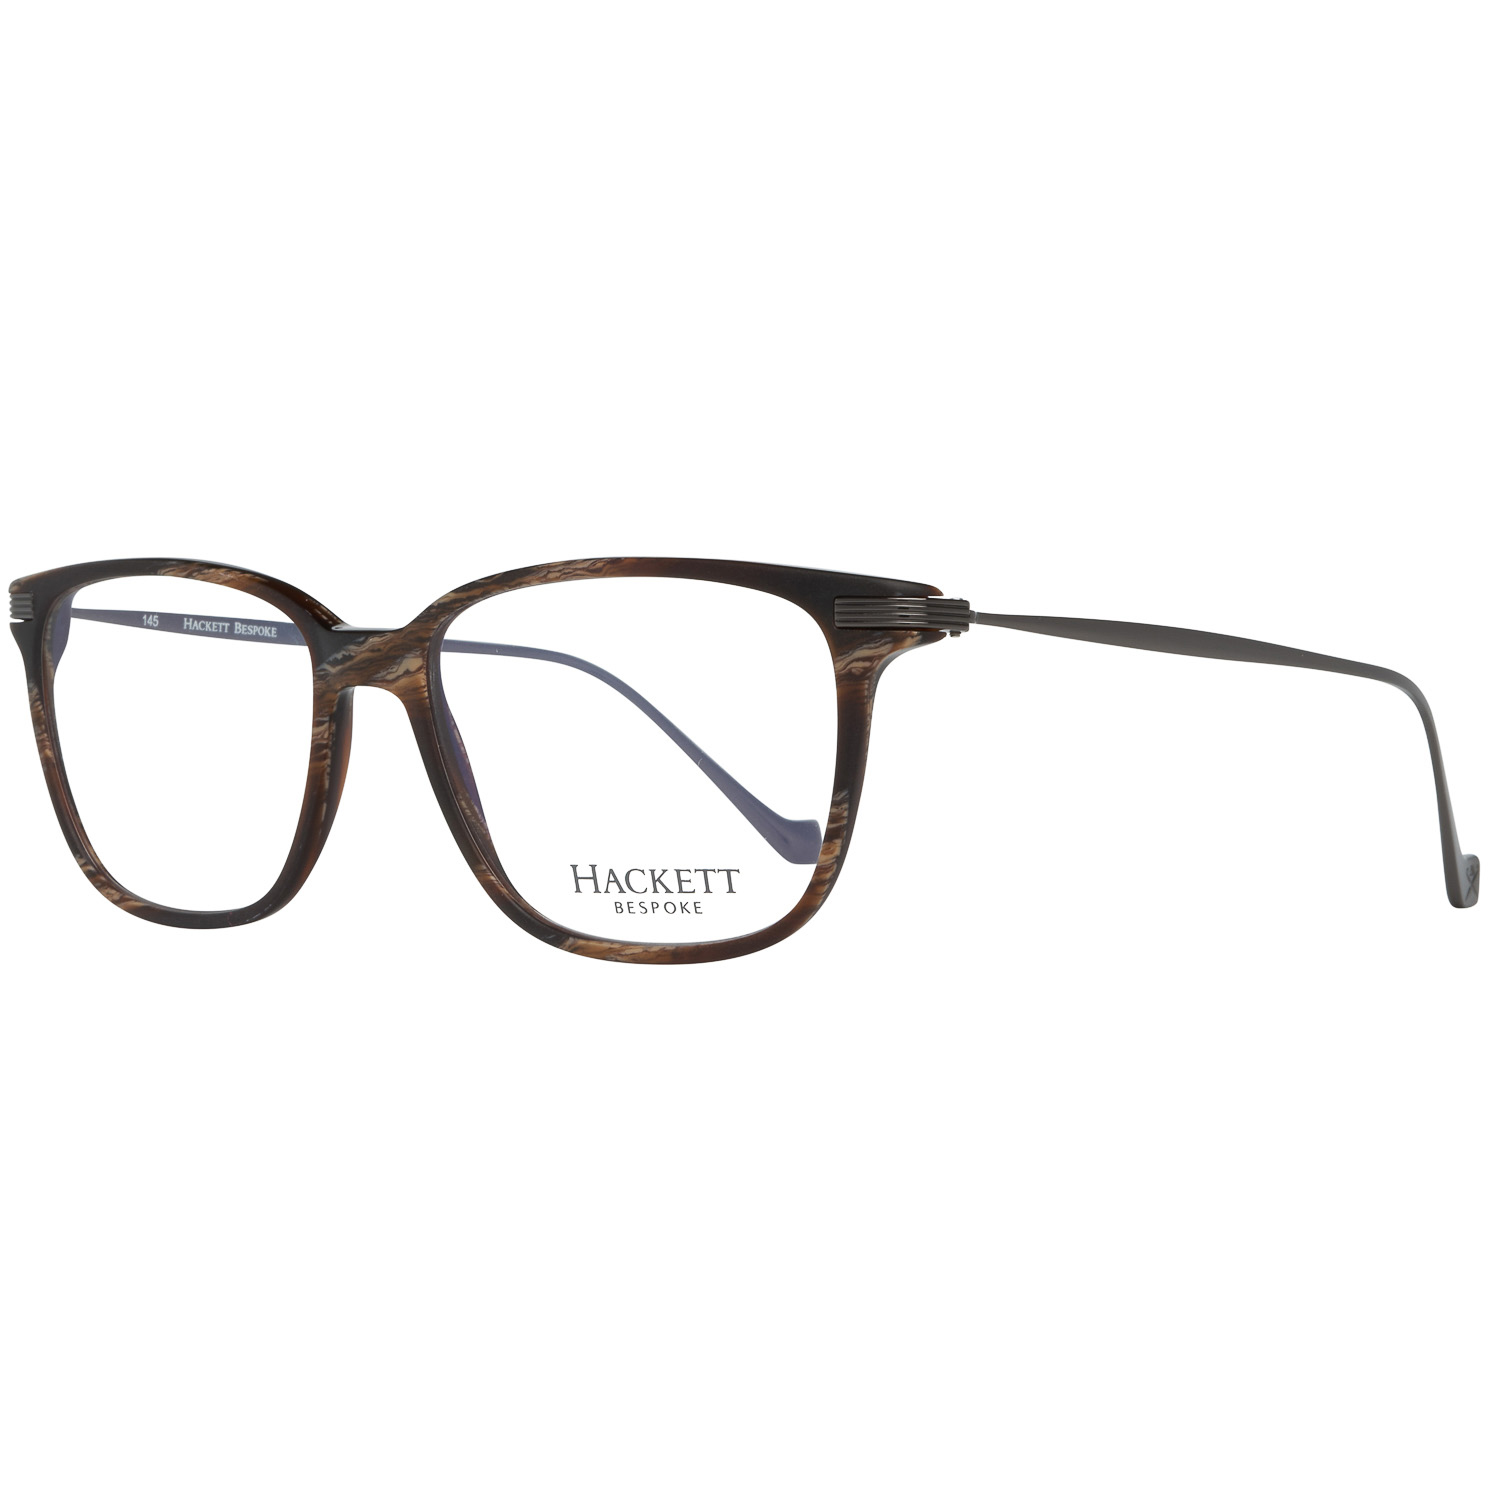 Hackett Bespoke Optical Frame HEB175 968 53 Brown